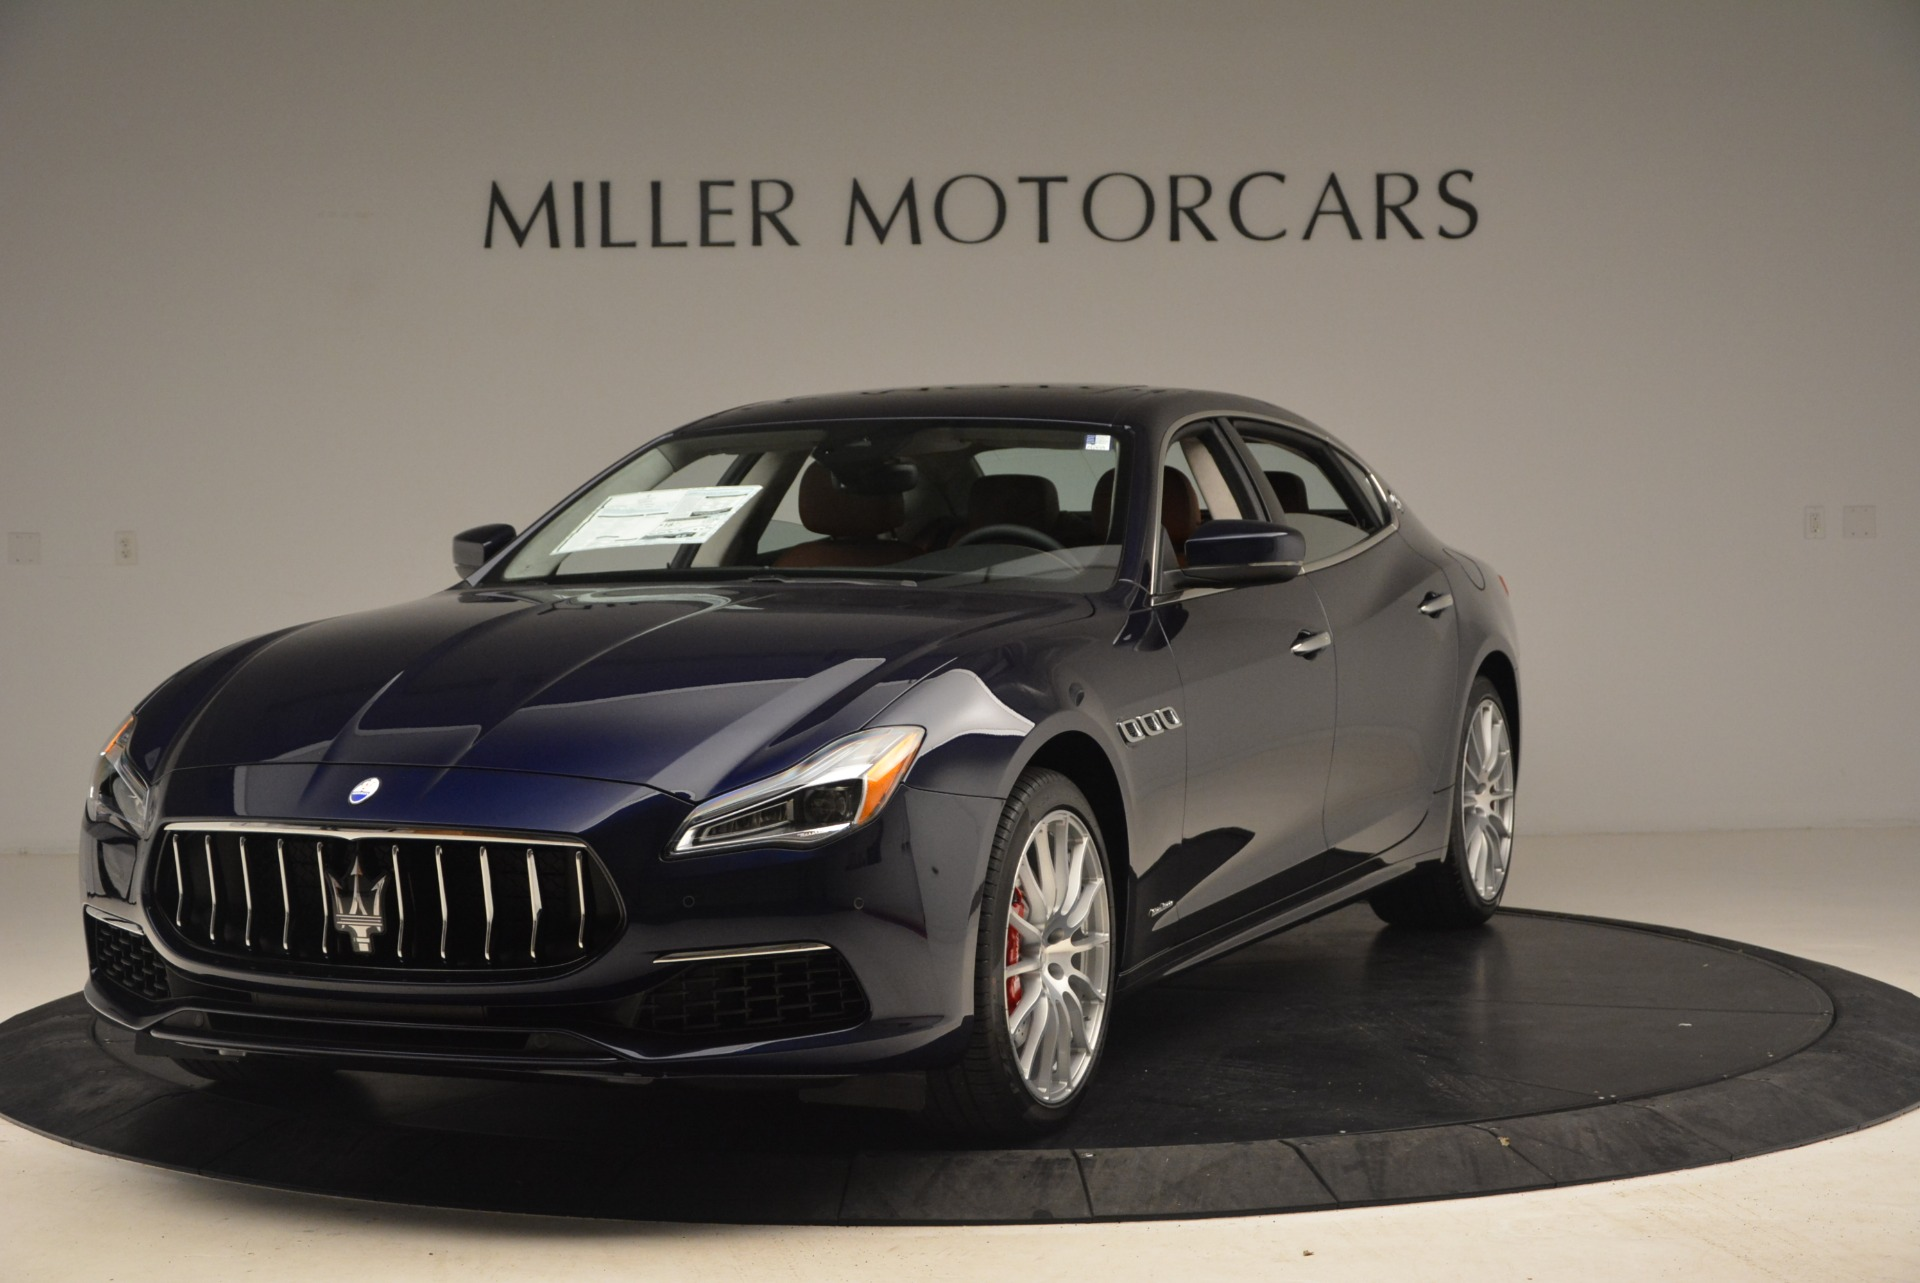 New 2019 Maserati Quattroporte S Q4 GranLusso For Sale In Greenwich, CT. Alfa Romeo of Greenwich, W631 2767_main